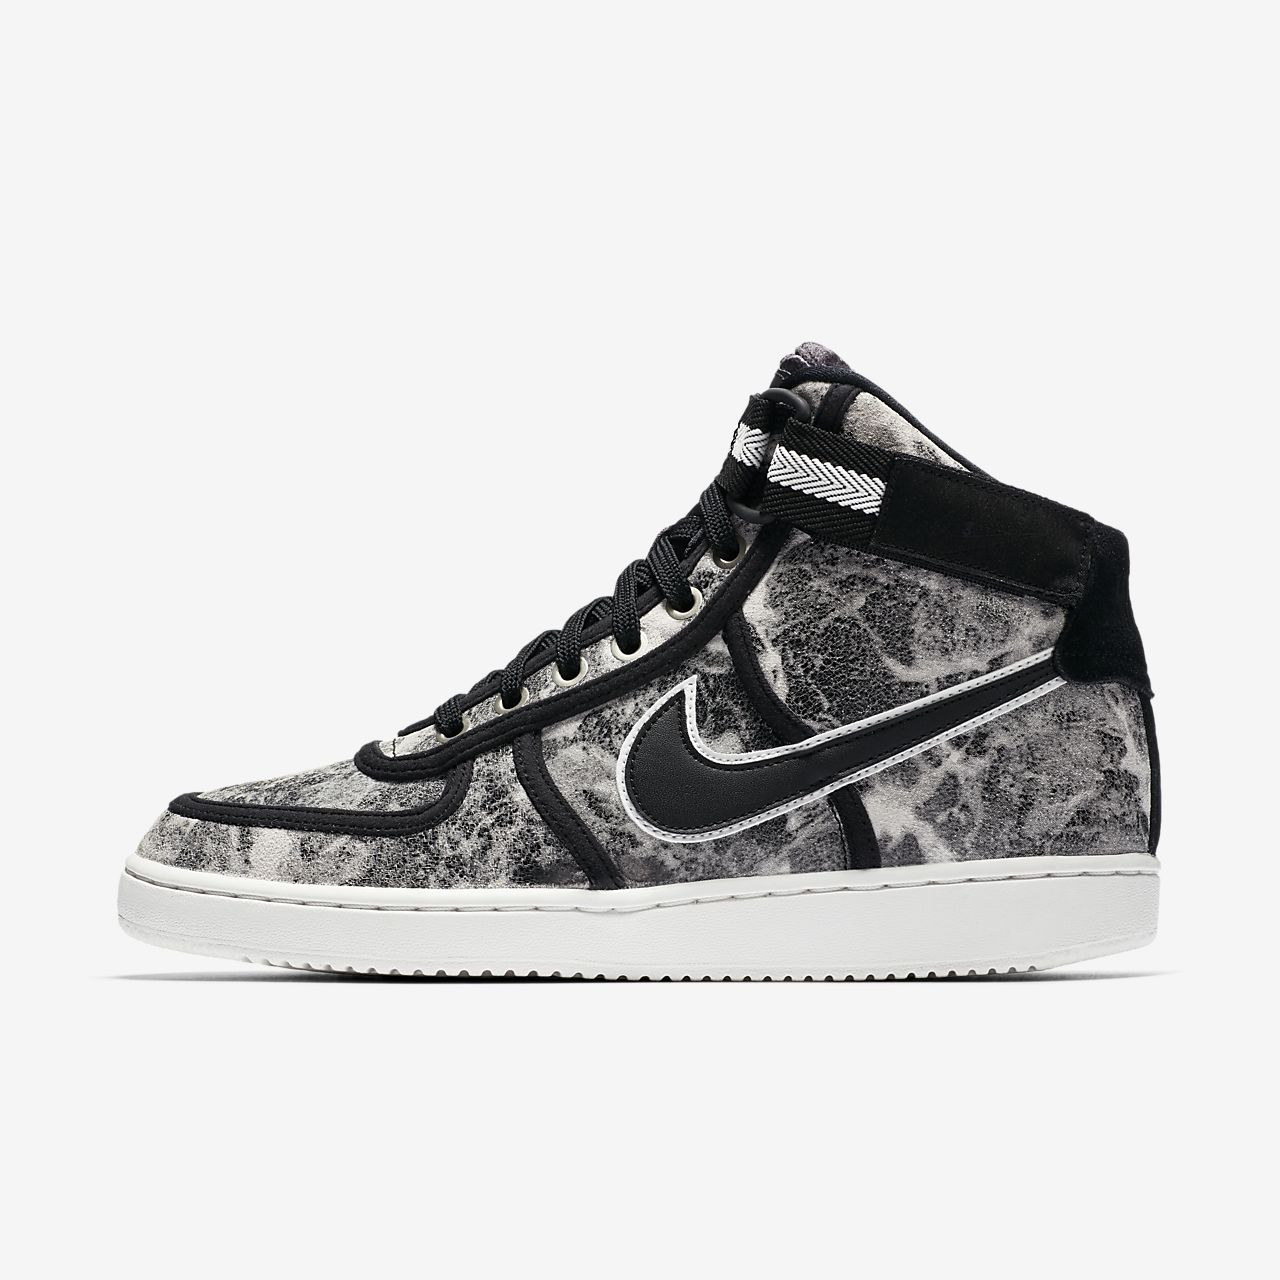 brand new b5228 bd71a Womens Shoe. Nike Vandal High LX